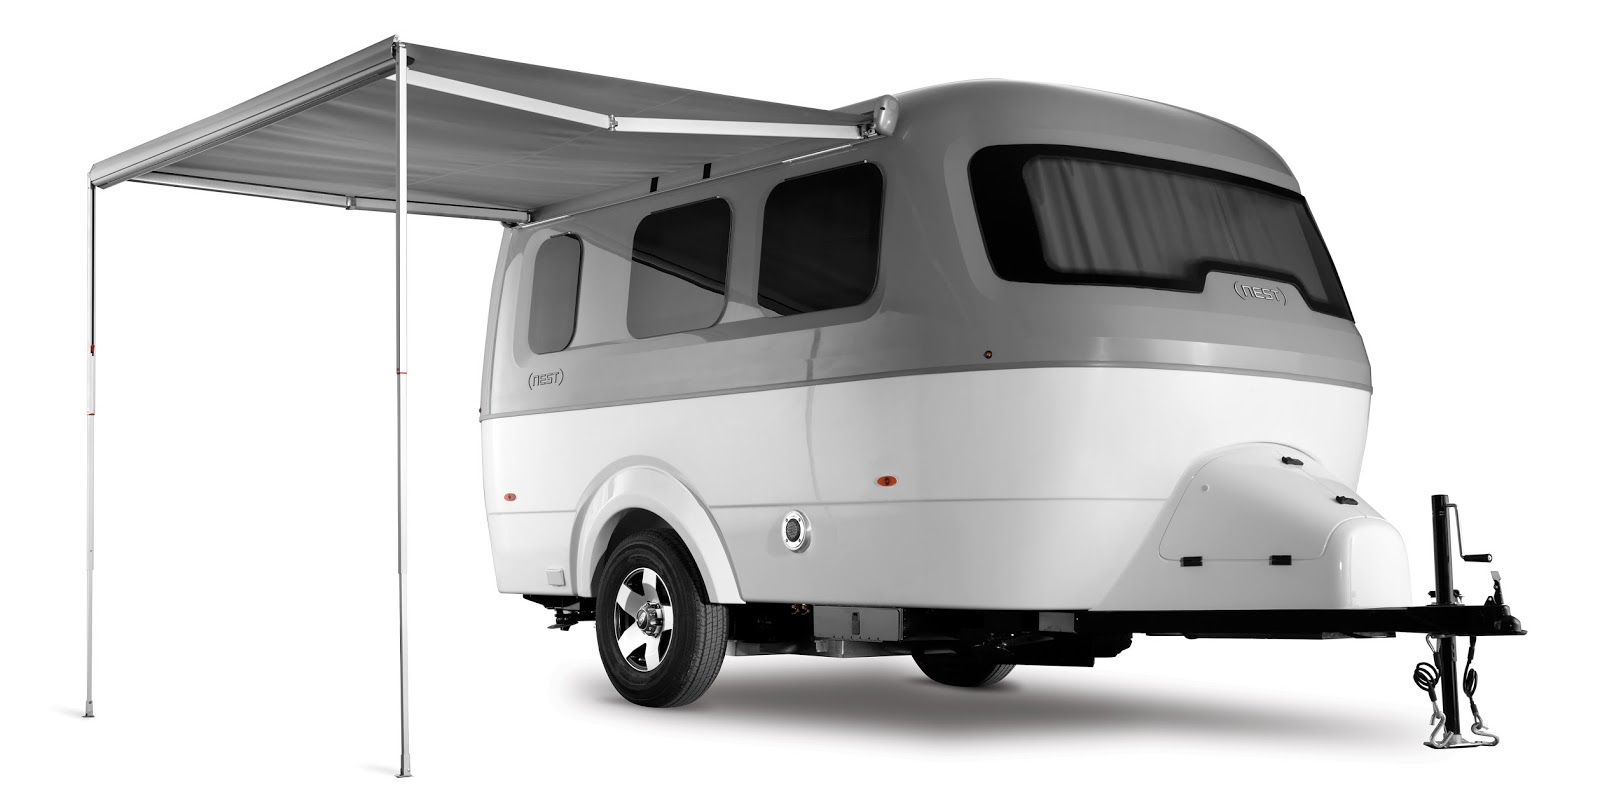 Airstream welcomes the Nest to iconic travel trailer family - Gr8LakesCamper